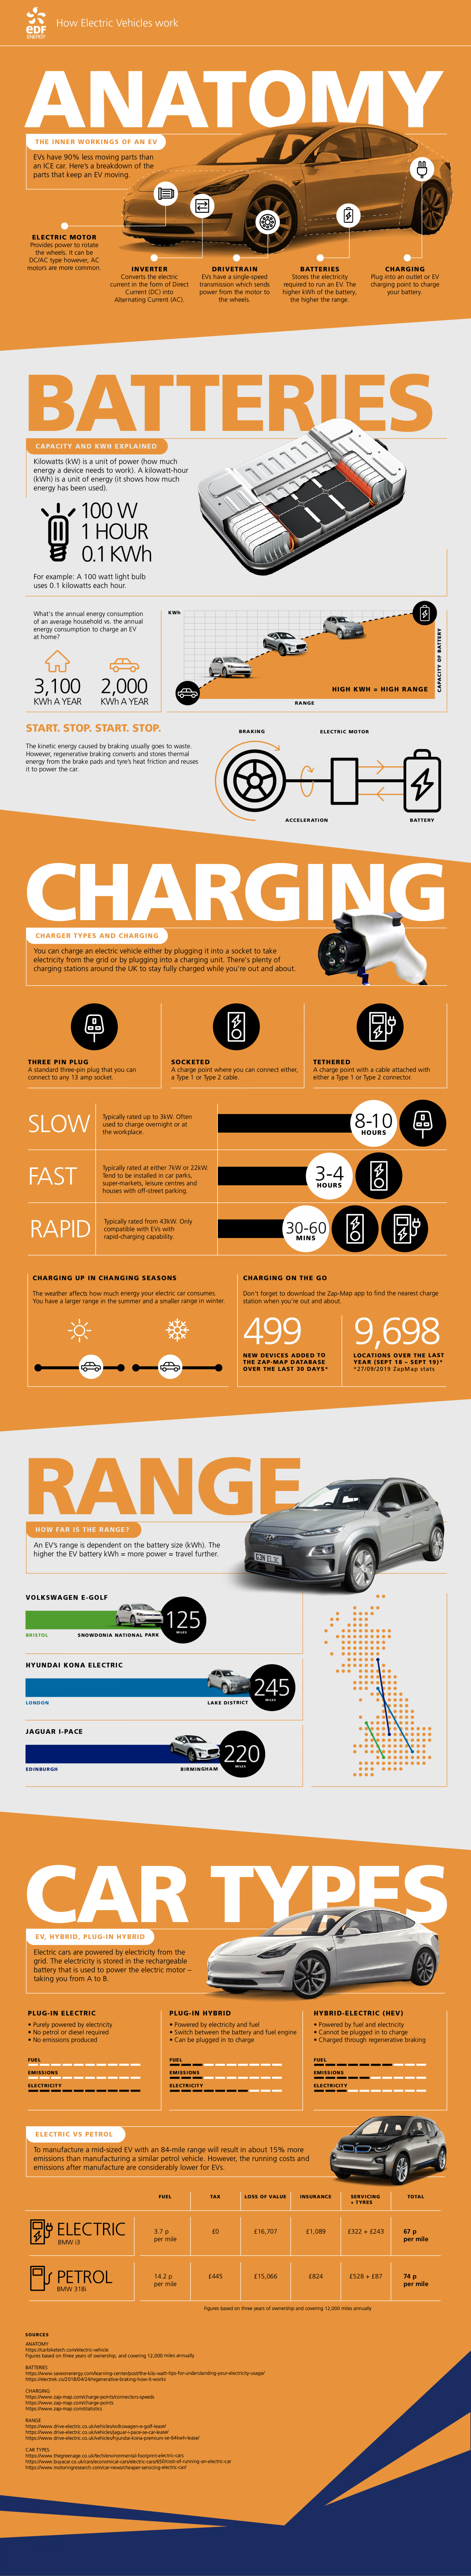 How electric cars work infographic - https://www.edfenergy.com/electric-cars/how-works#transcript